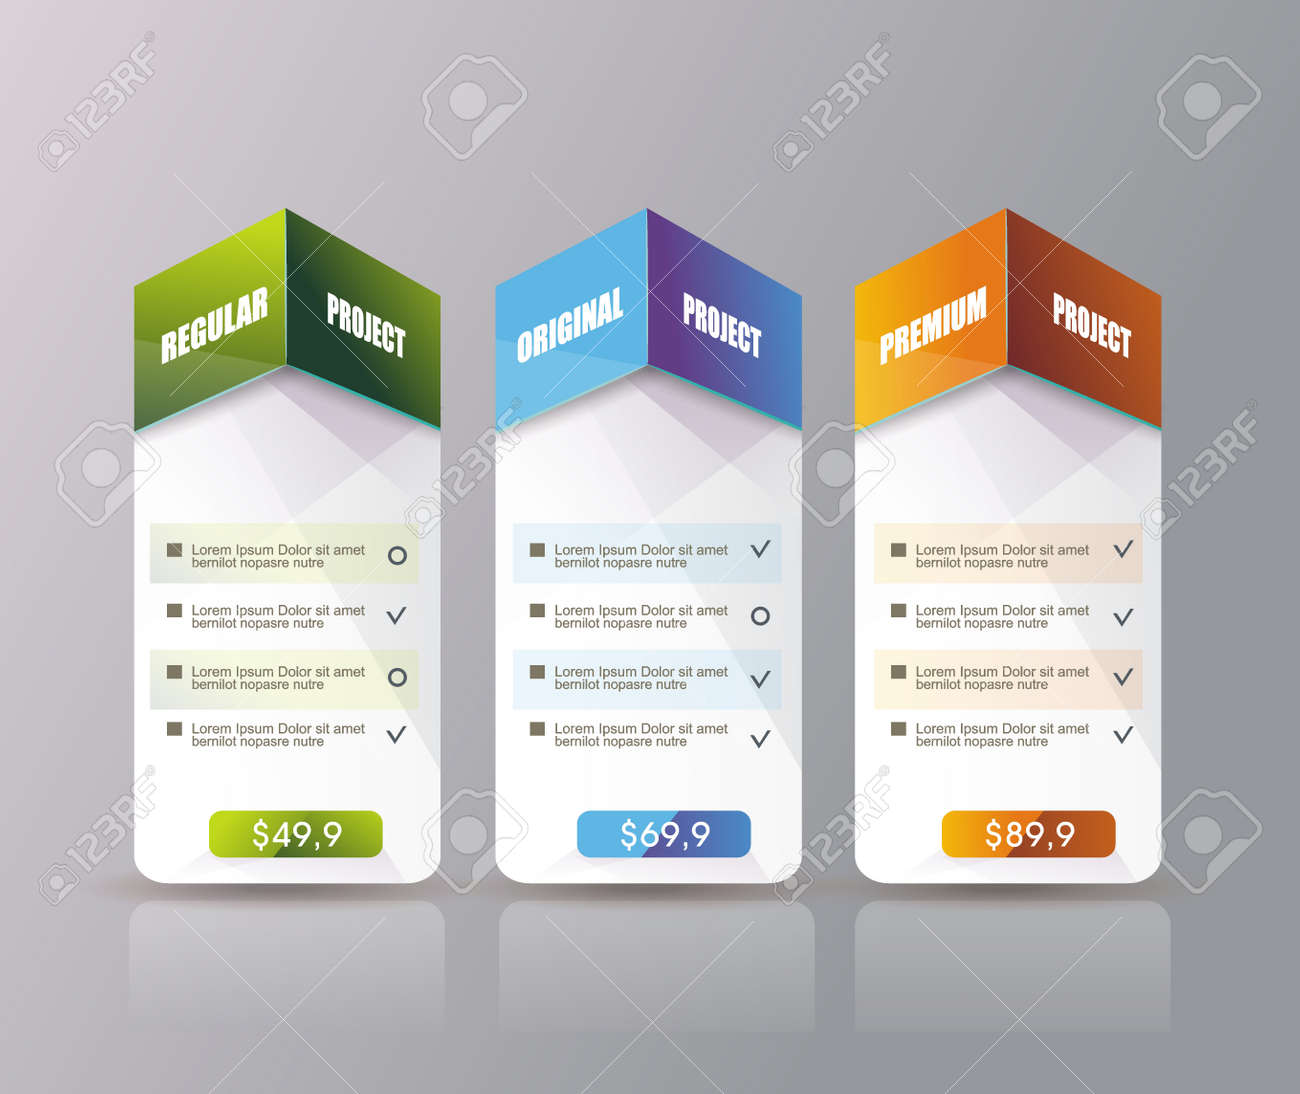 3 payment plans for online services, pricing table for websites and applications. - 159337426